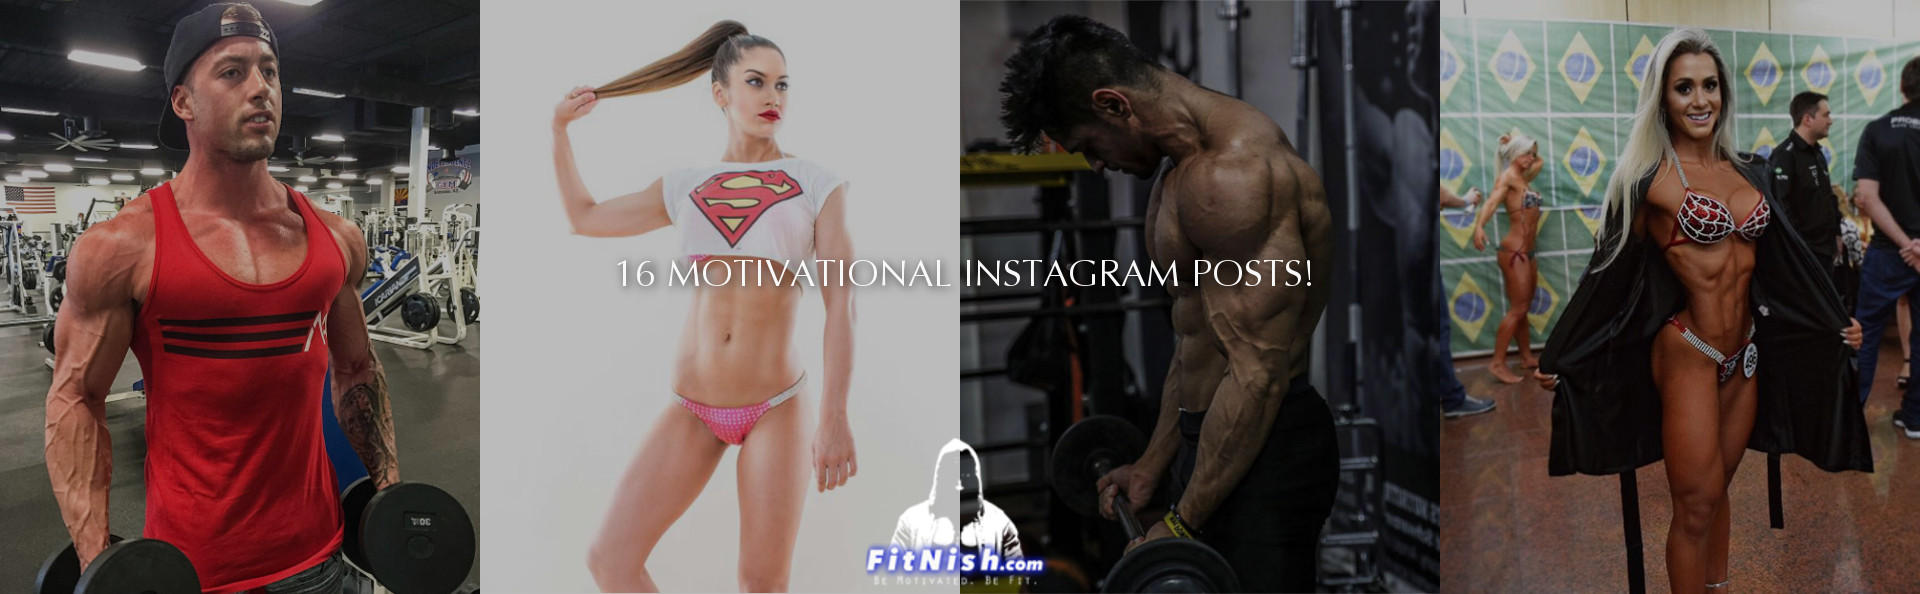 16 Fit, Motivational Instagram Posts From Around The Web! 3rd Edition